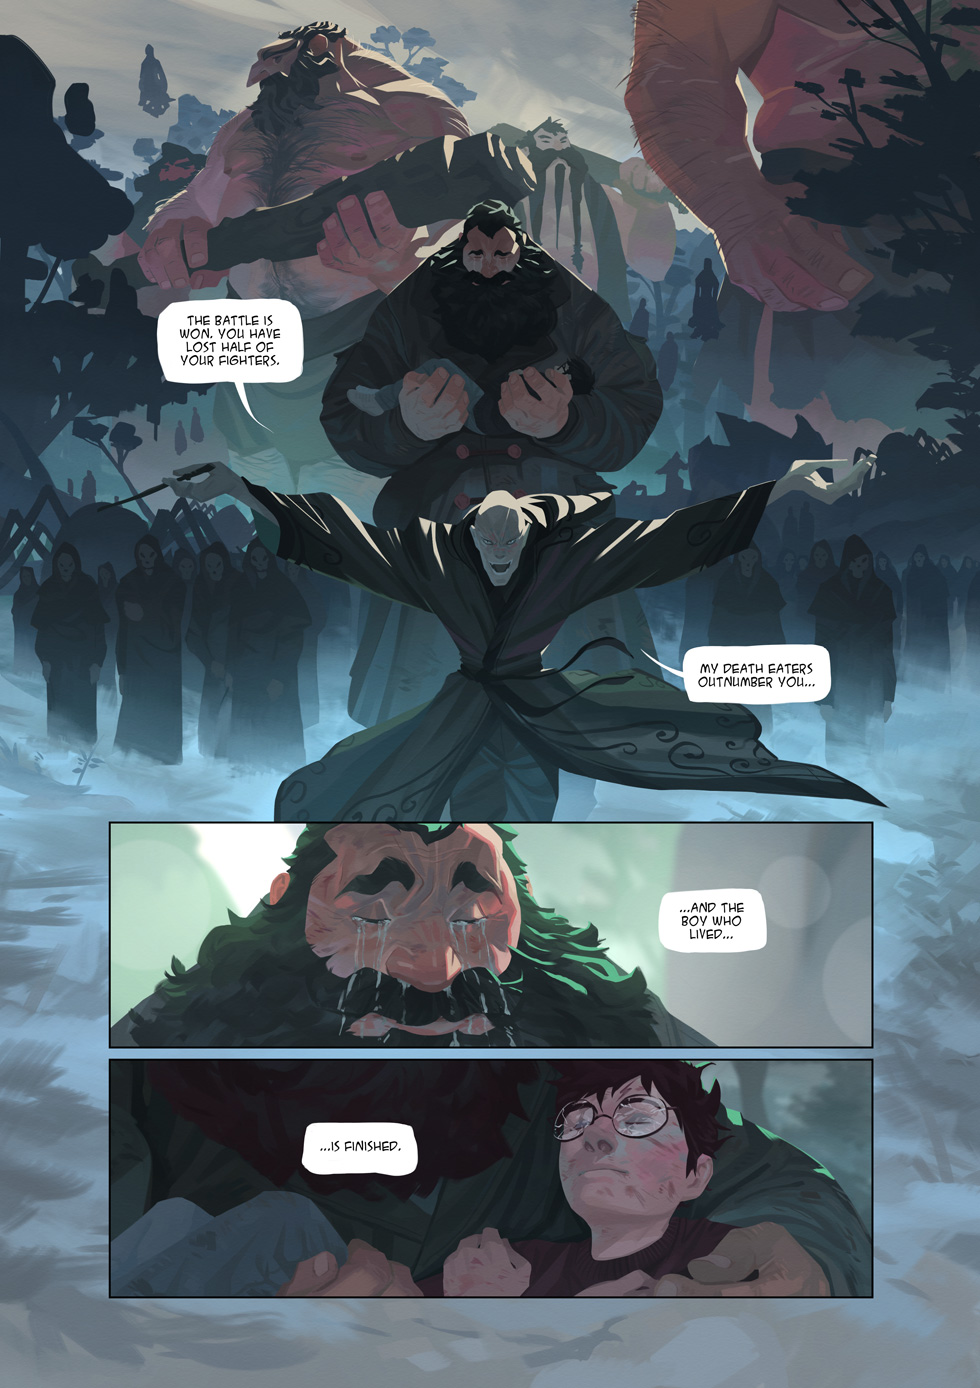 Harry Potter And The Deathly Hallows By Nesskain On Deviantart